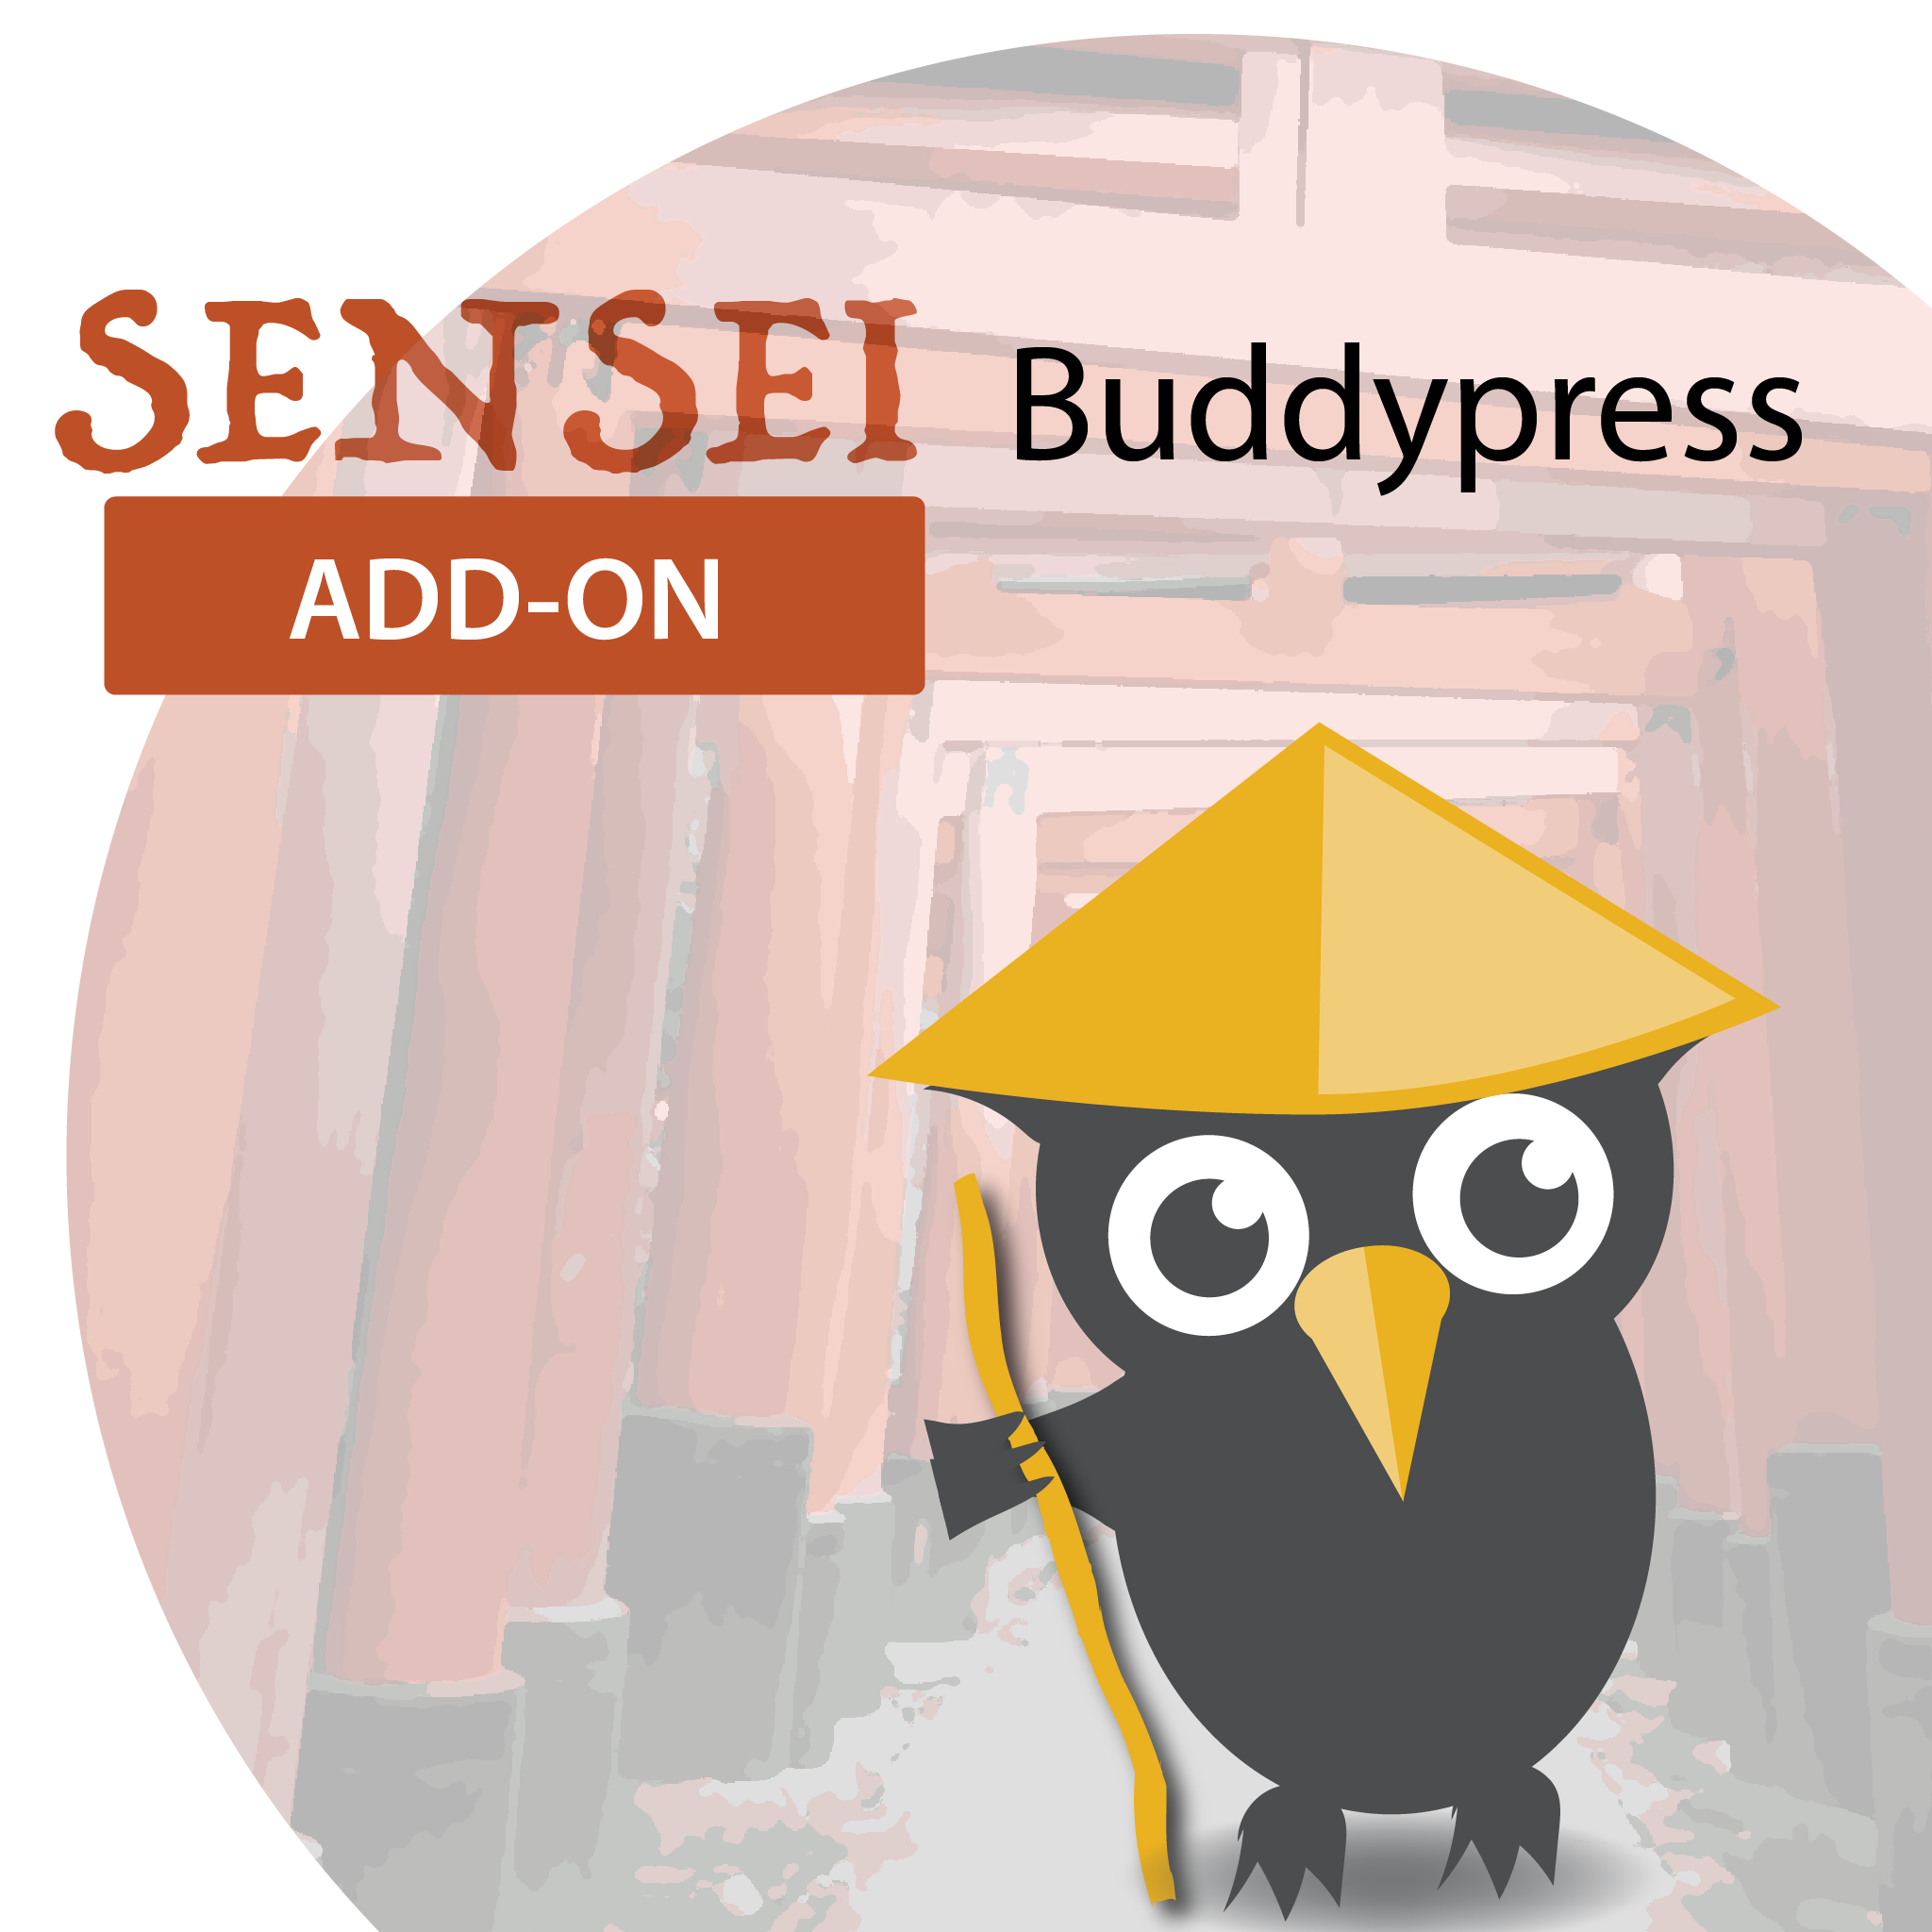 WooCommerce Sensei LMS Buddypress Add-On